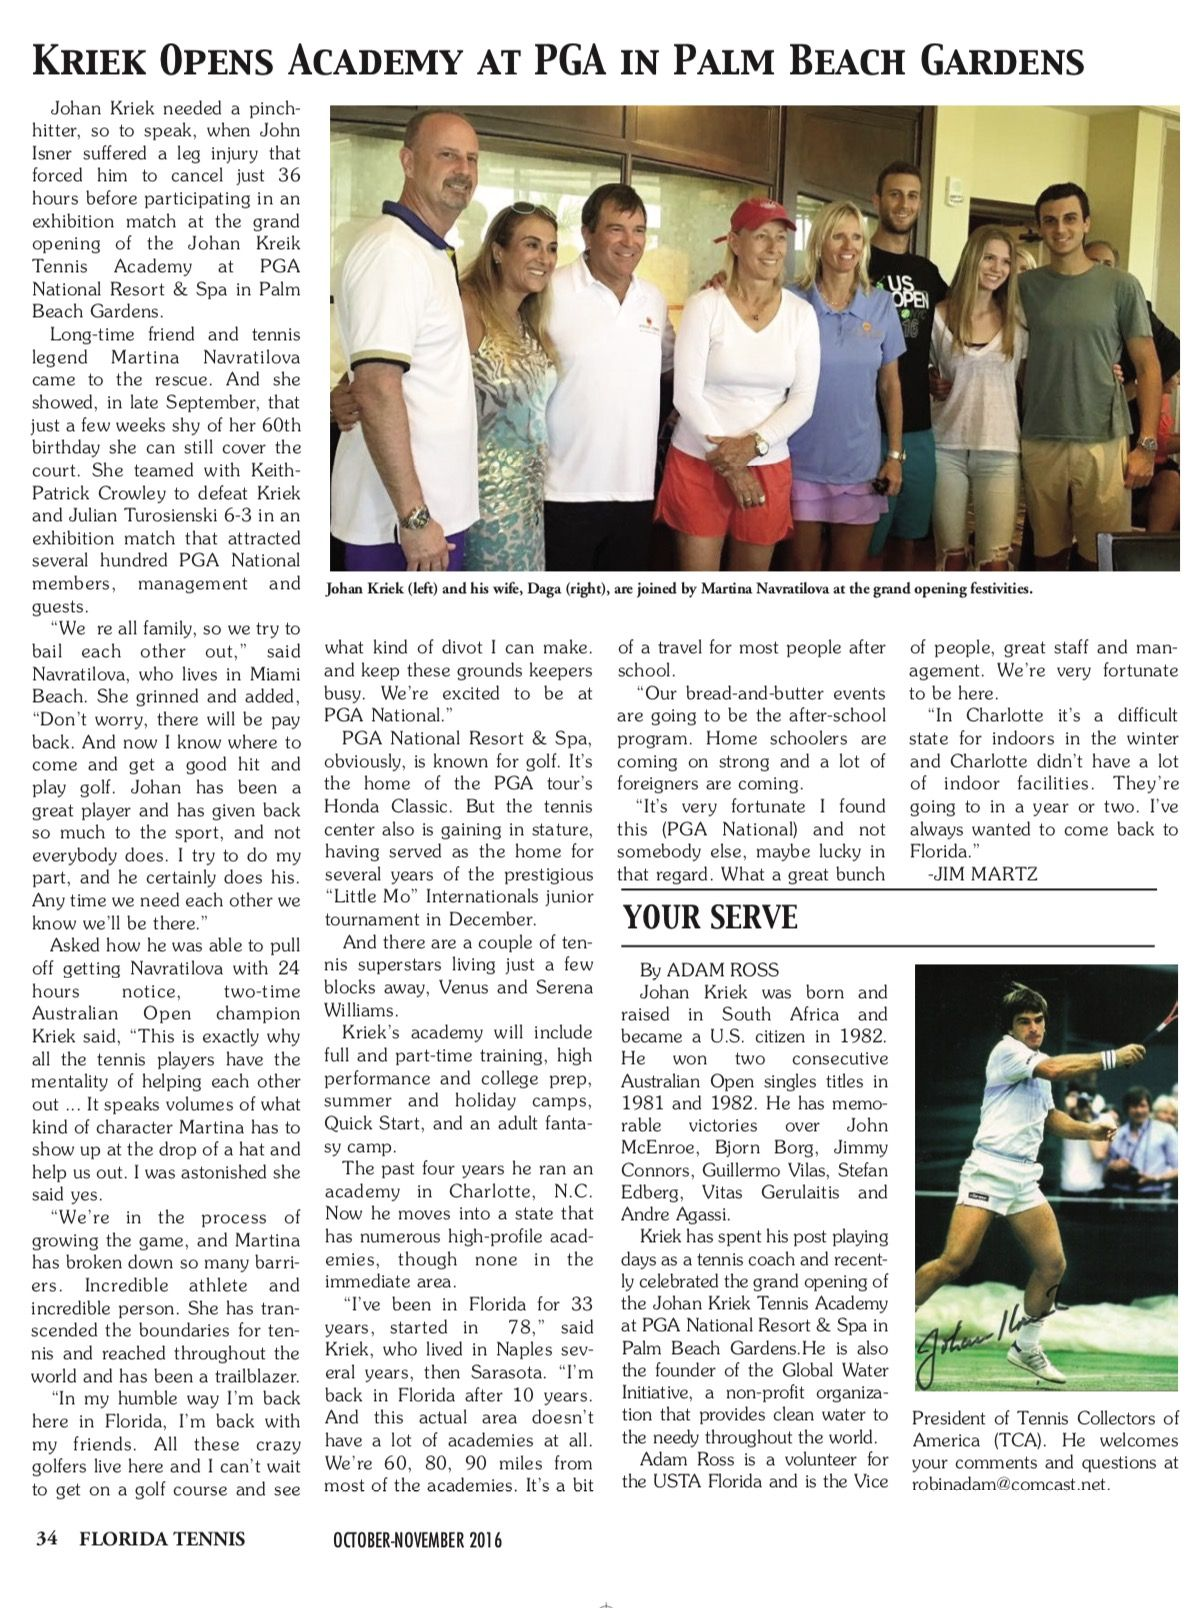 Thank You Florida Tennis For This Sneak Peek Into Your Upcoming November Issue Thank You Also For The Nic Martina Navratilova Palm Beach Gardens Great Friends